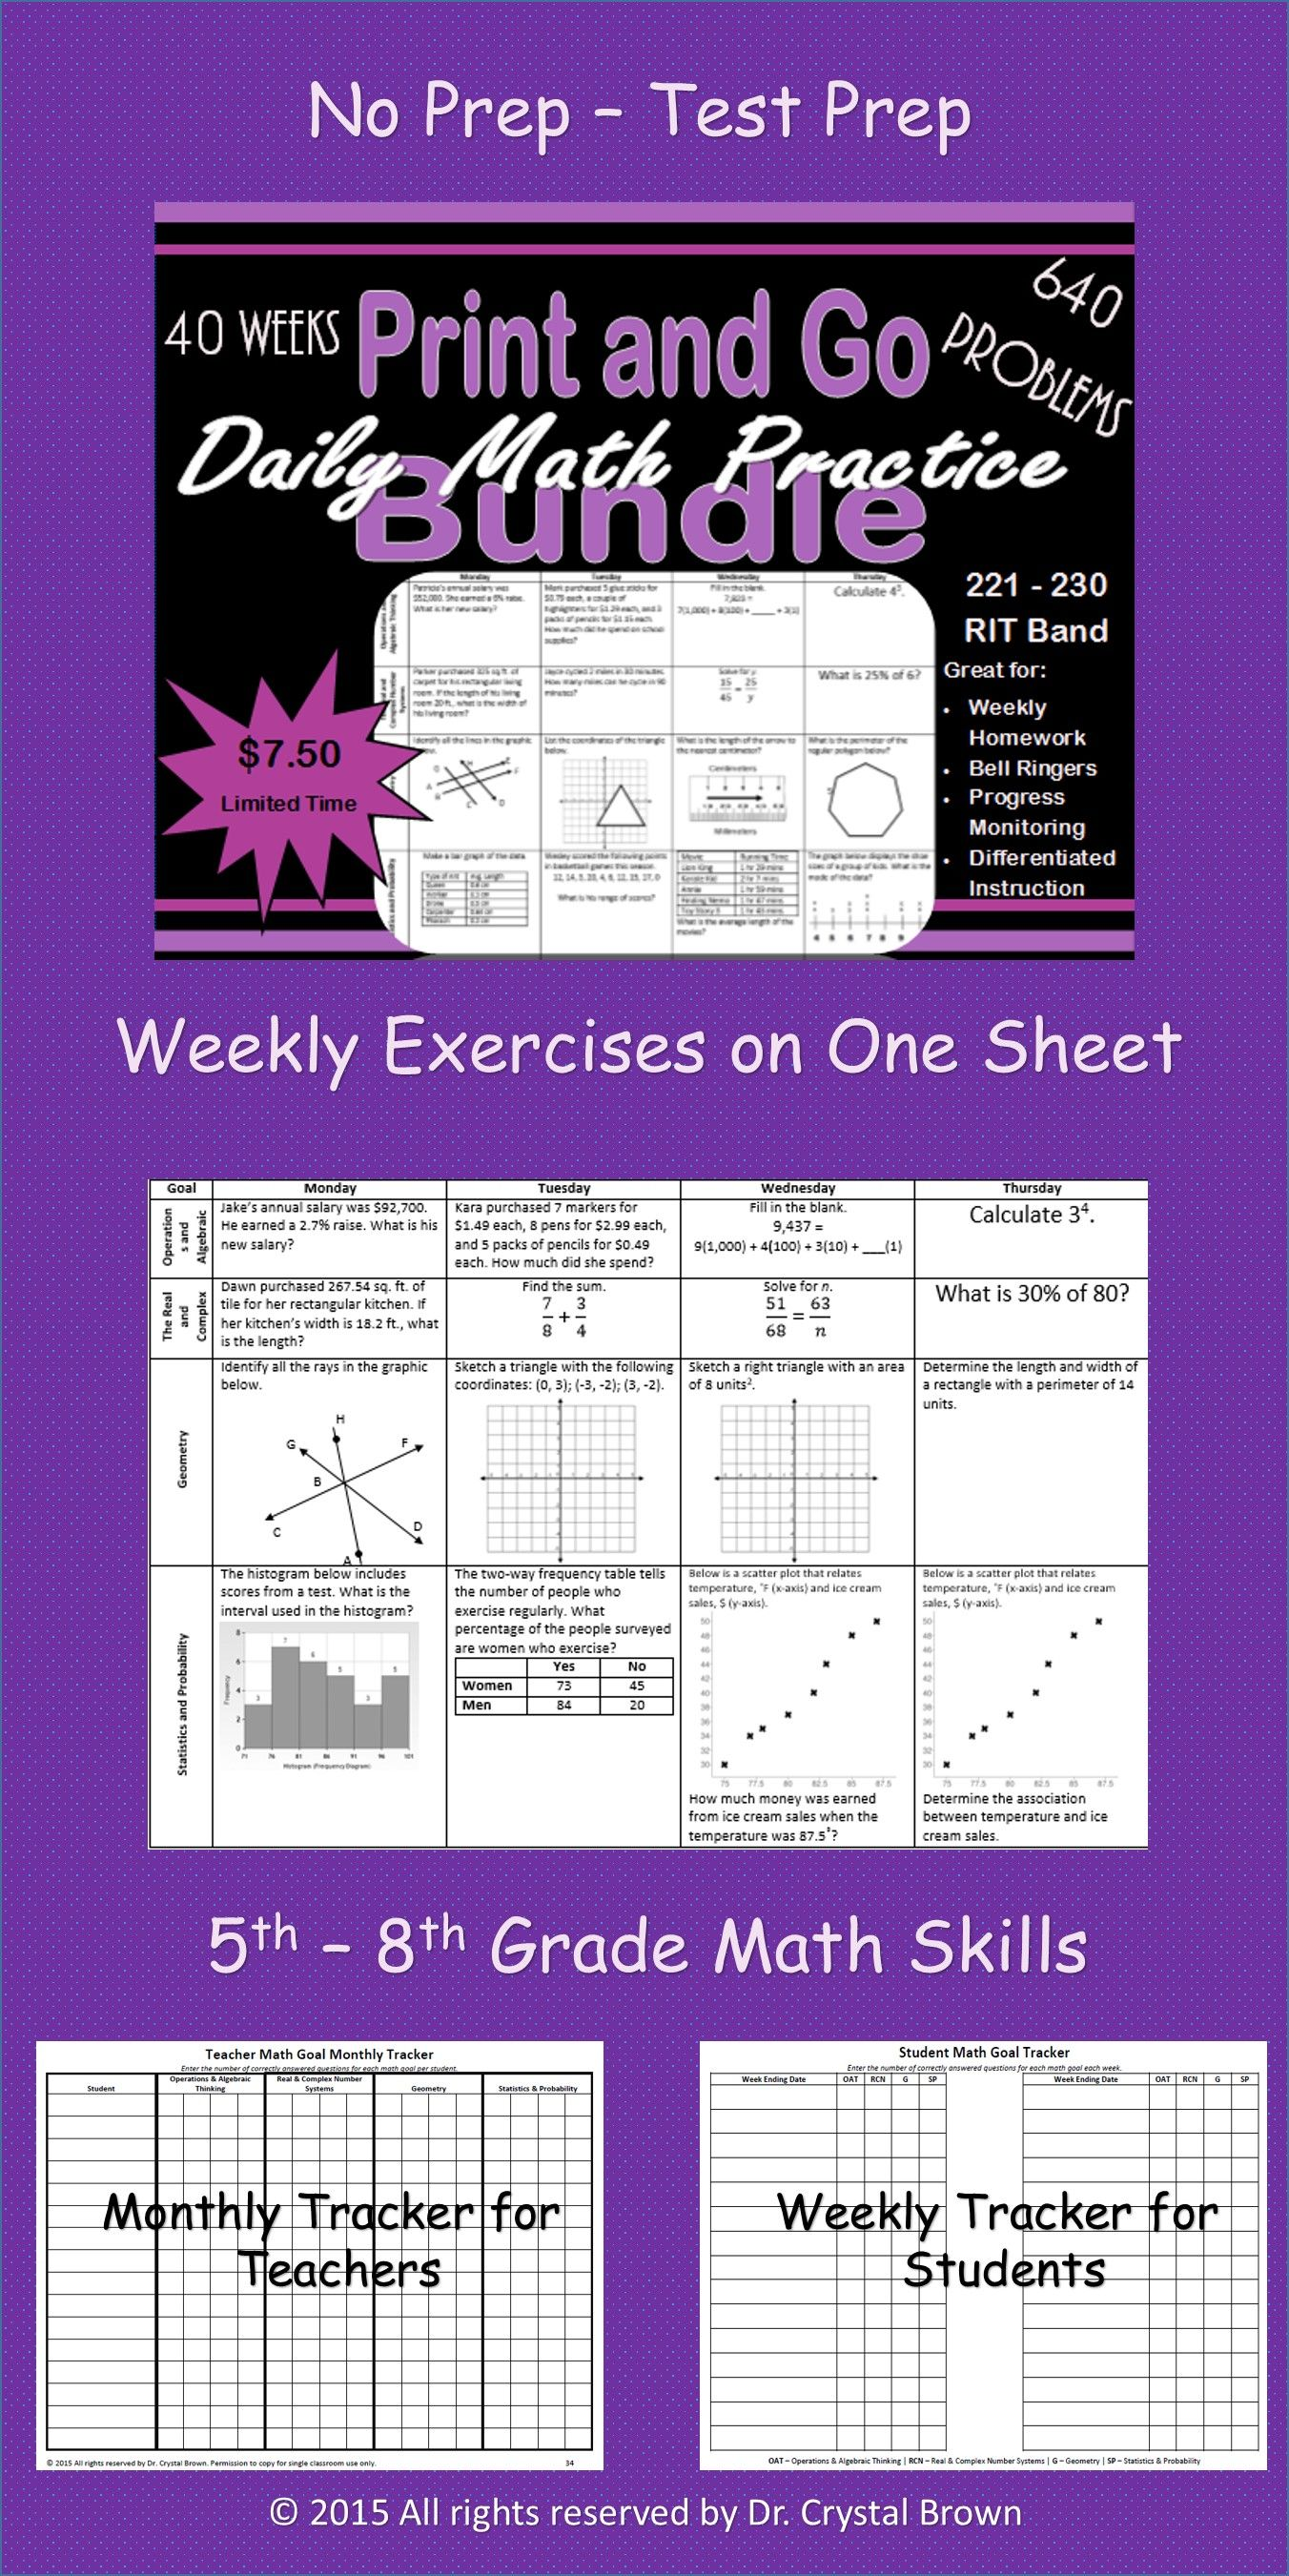 Daily Math Practice Bundle For Rit Band 221